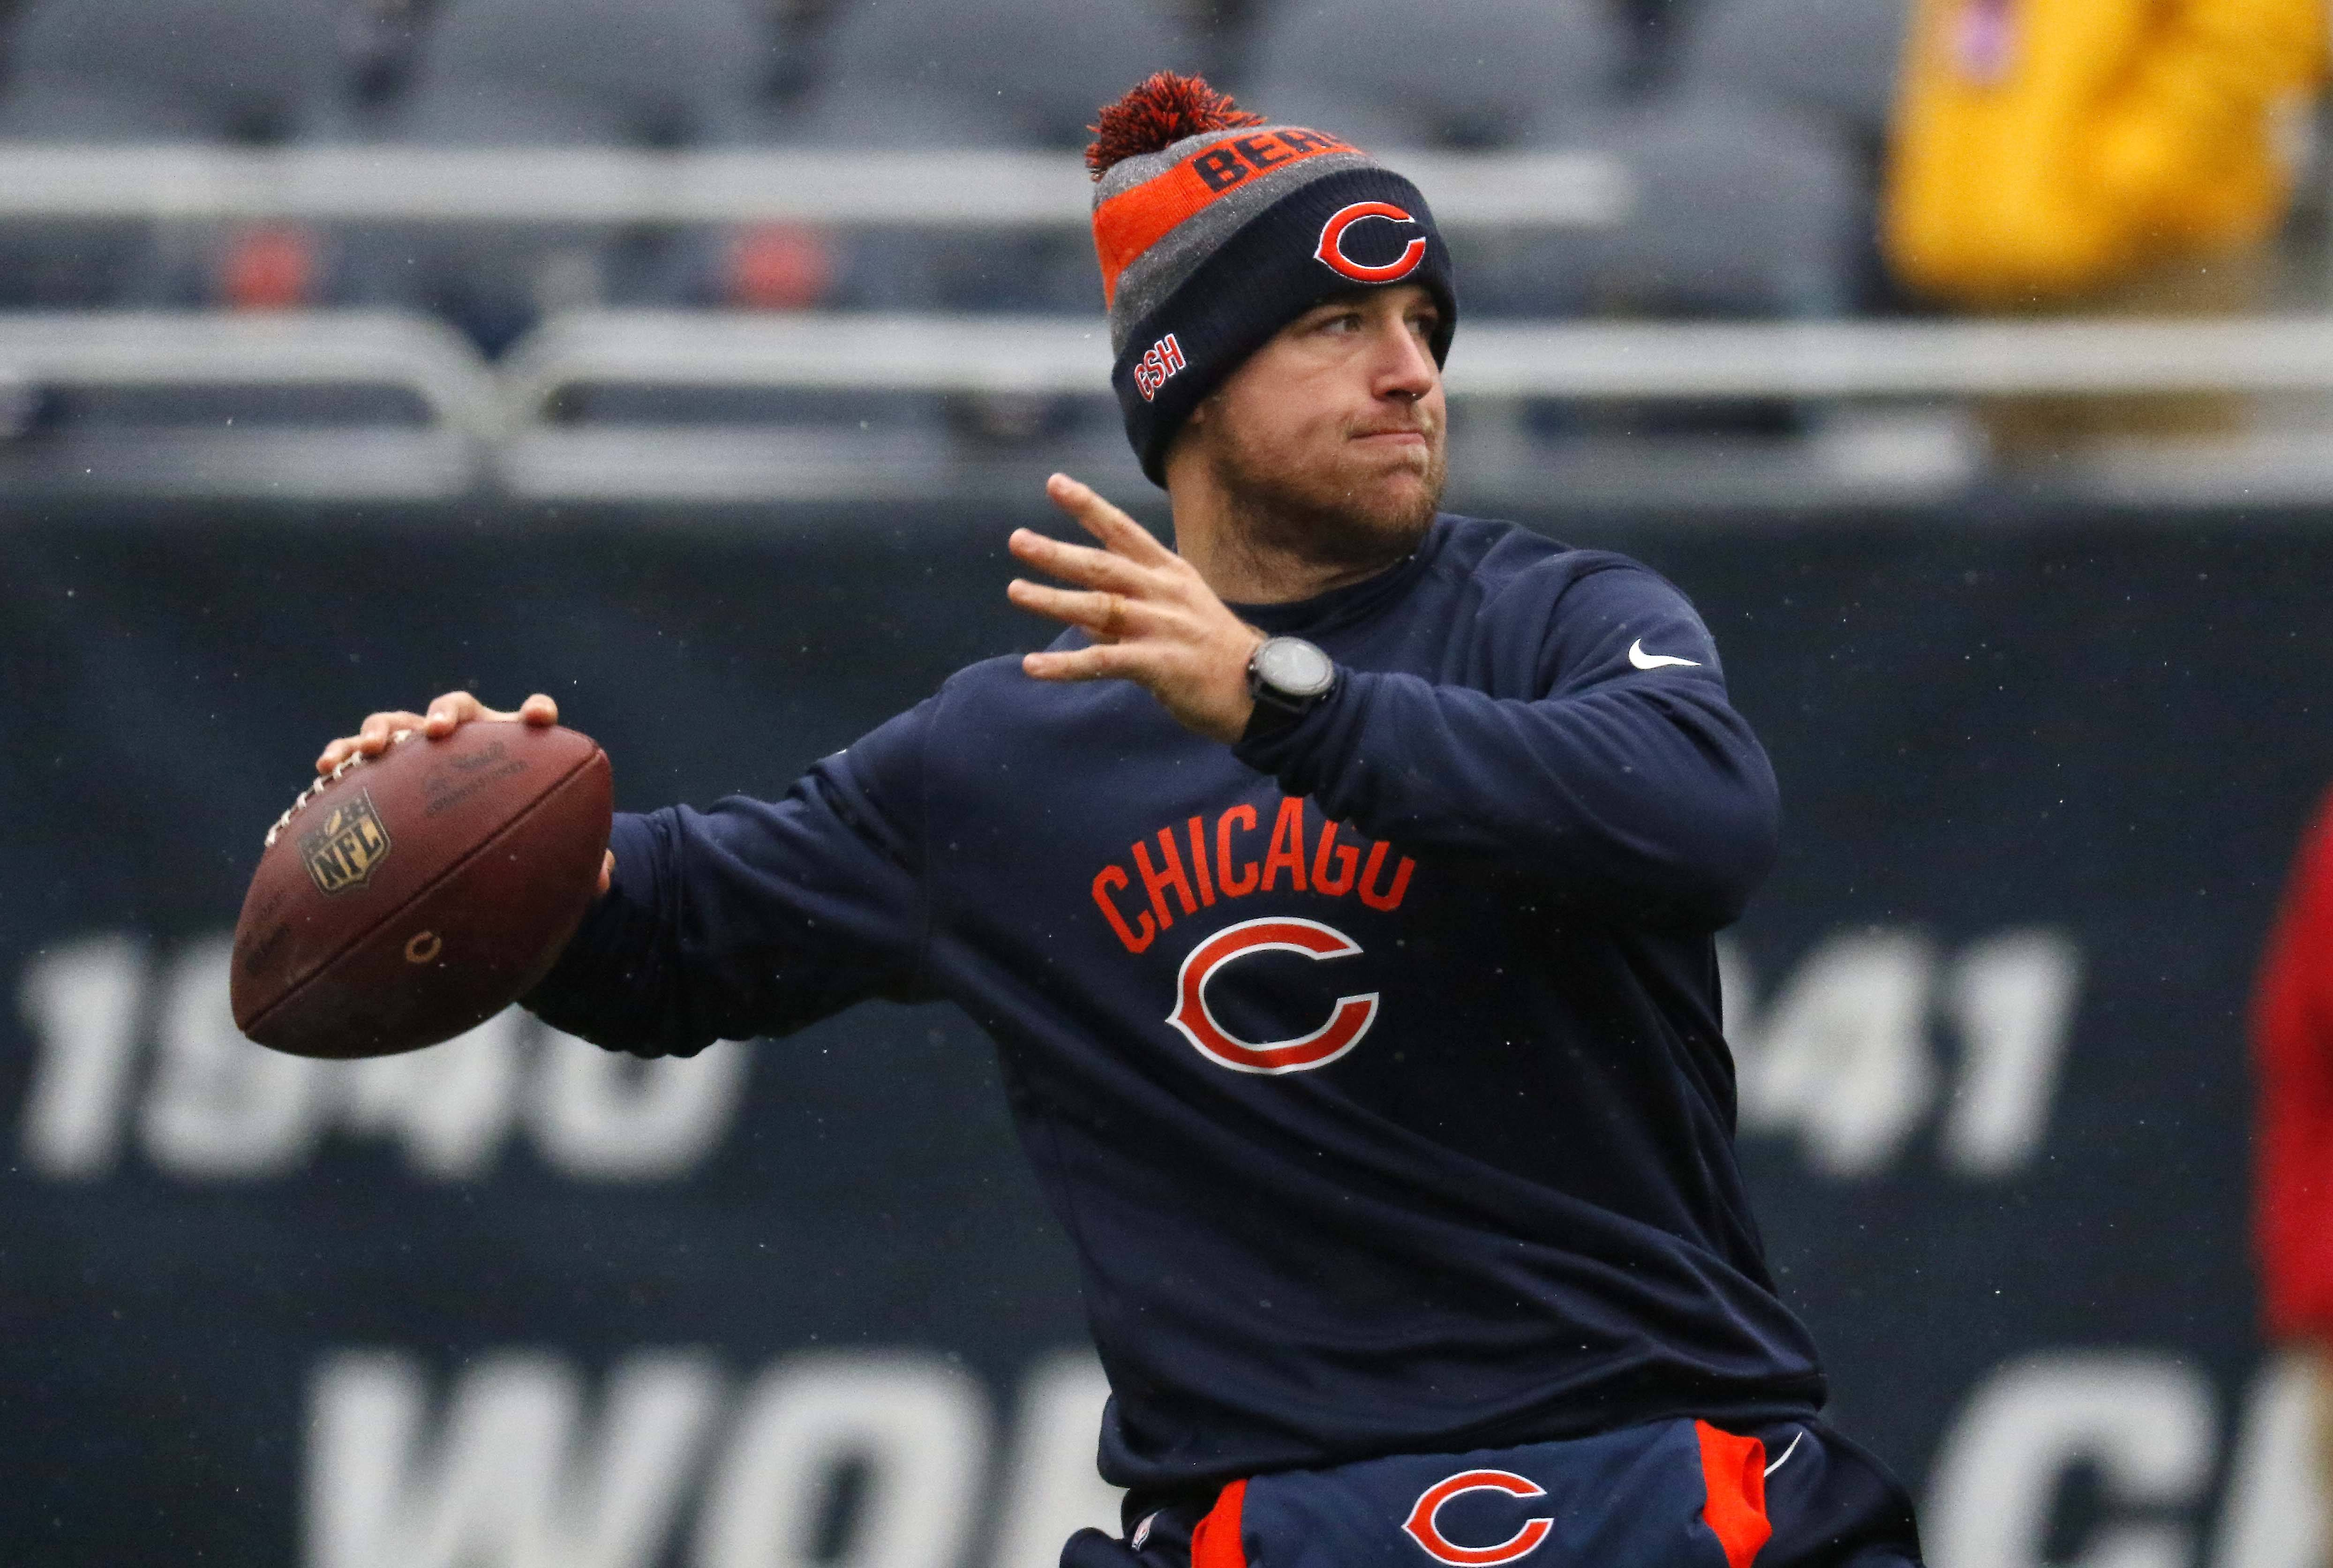 Chicago Bears quarterback Matt Barkley warms up prior to the game Sunday at Soldier Field in Chicago.